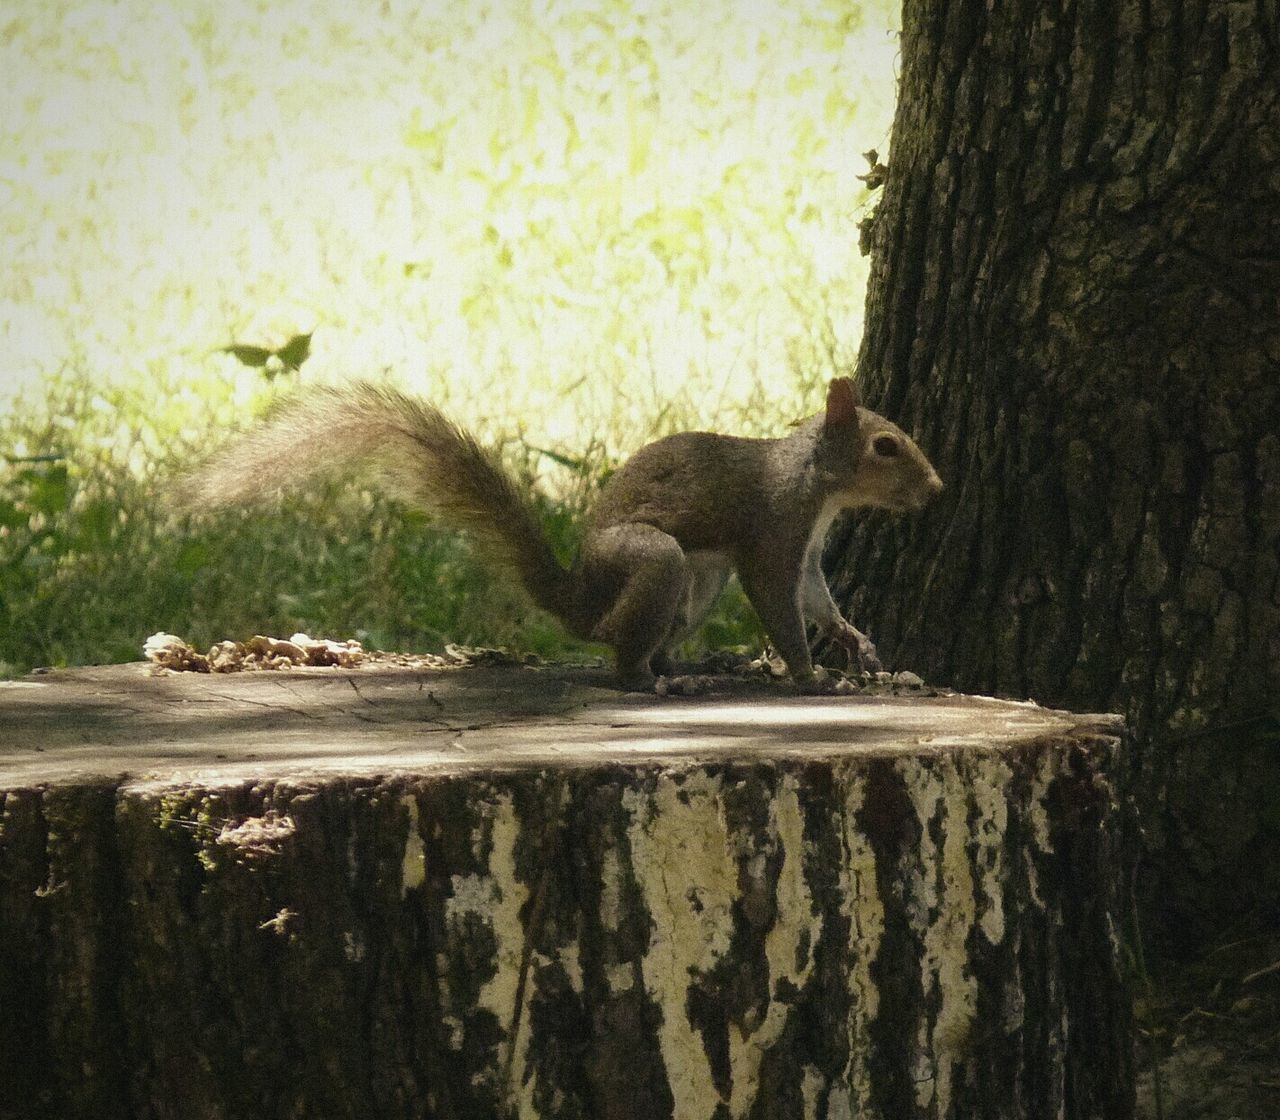 Squirrel Tree Stump Thisguy Nature_collection Treebark Animal Day Angles Of Nature Passing Through